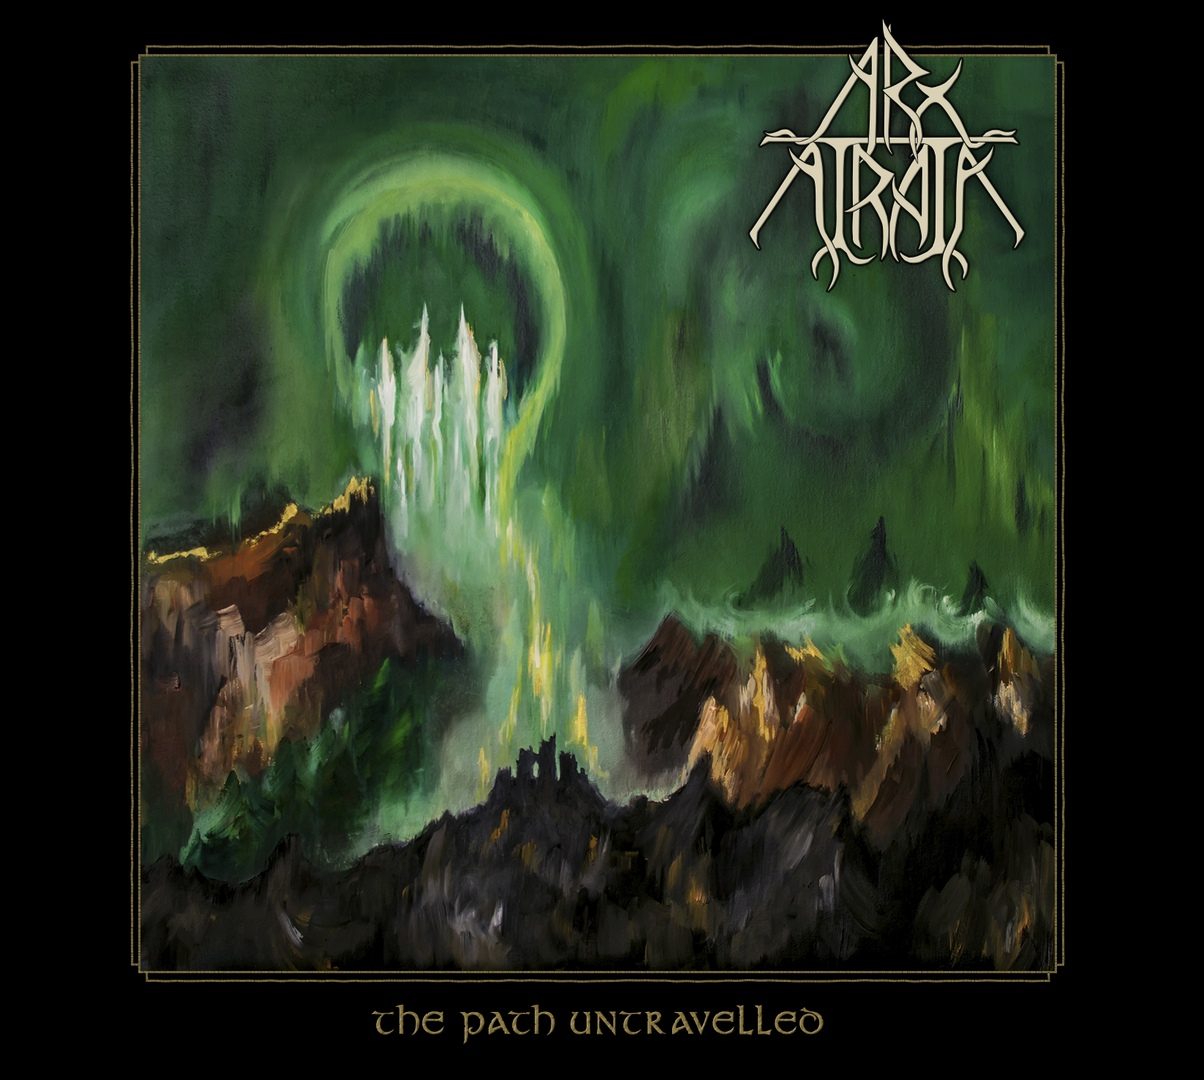 Arx Atrata  - The Path Untravelled